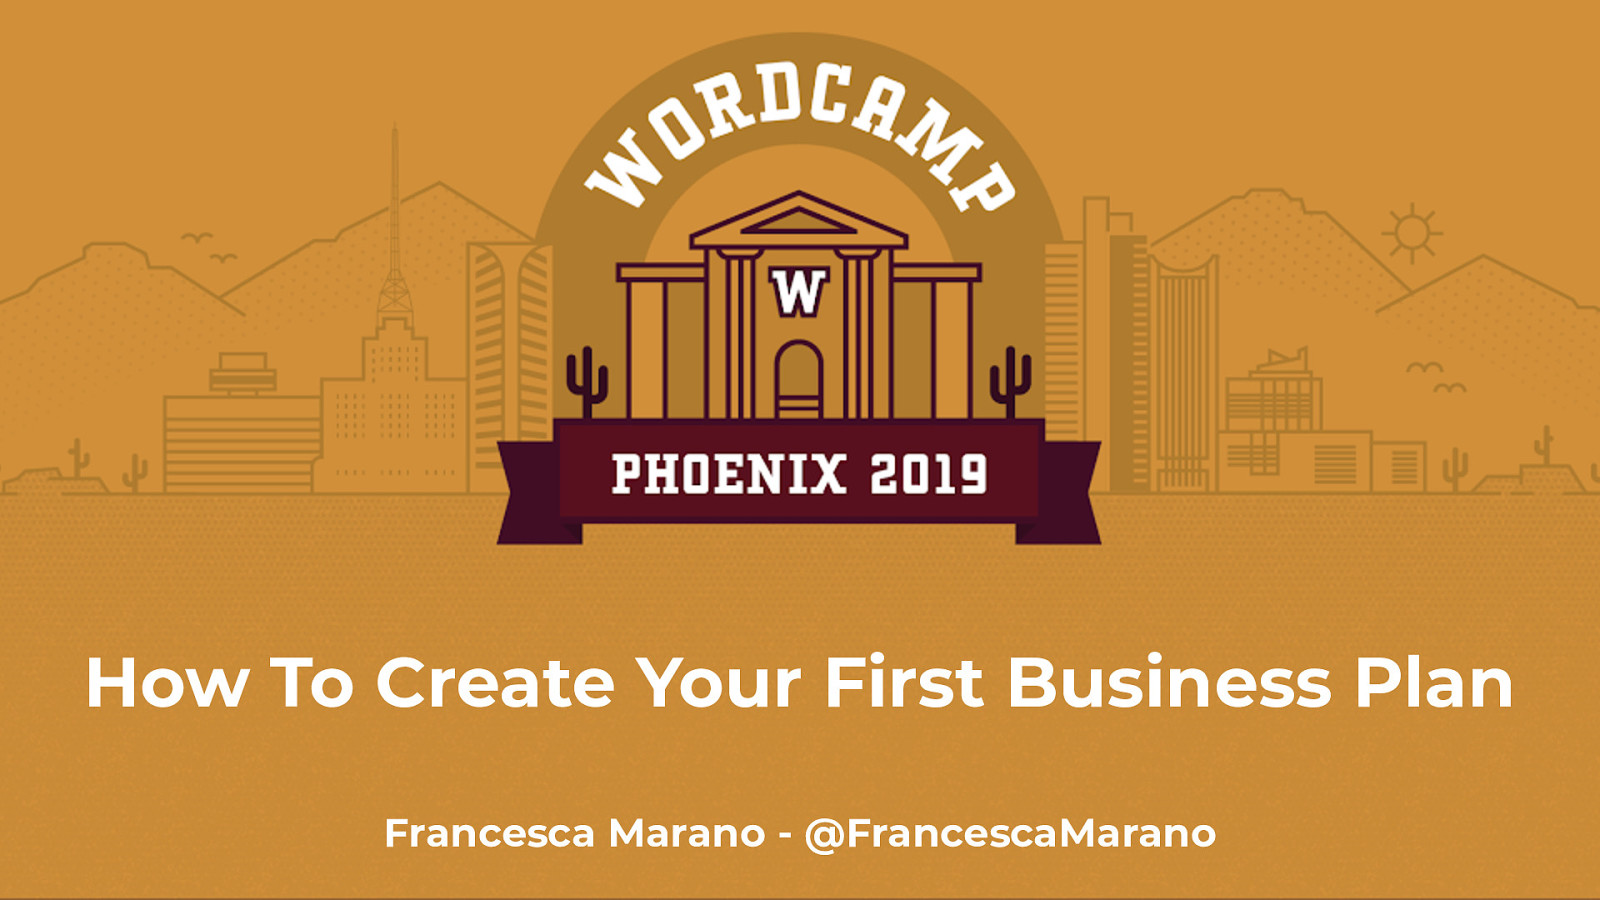 How to Create Your First Business Plan by Francesca Marano